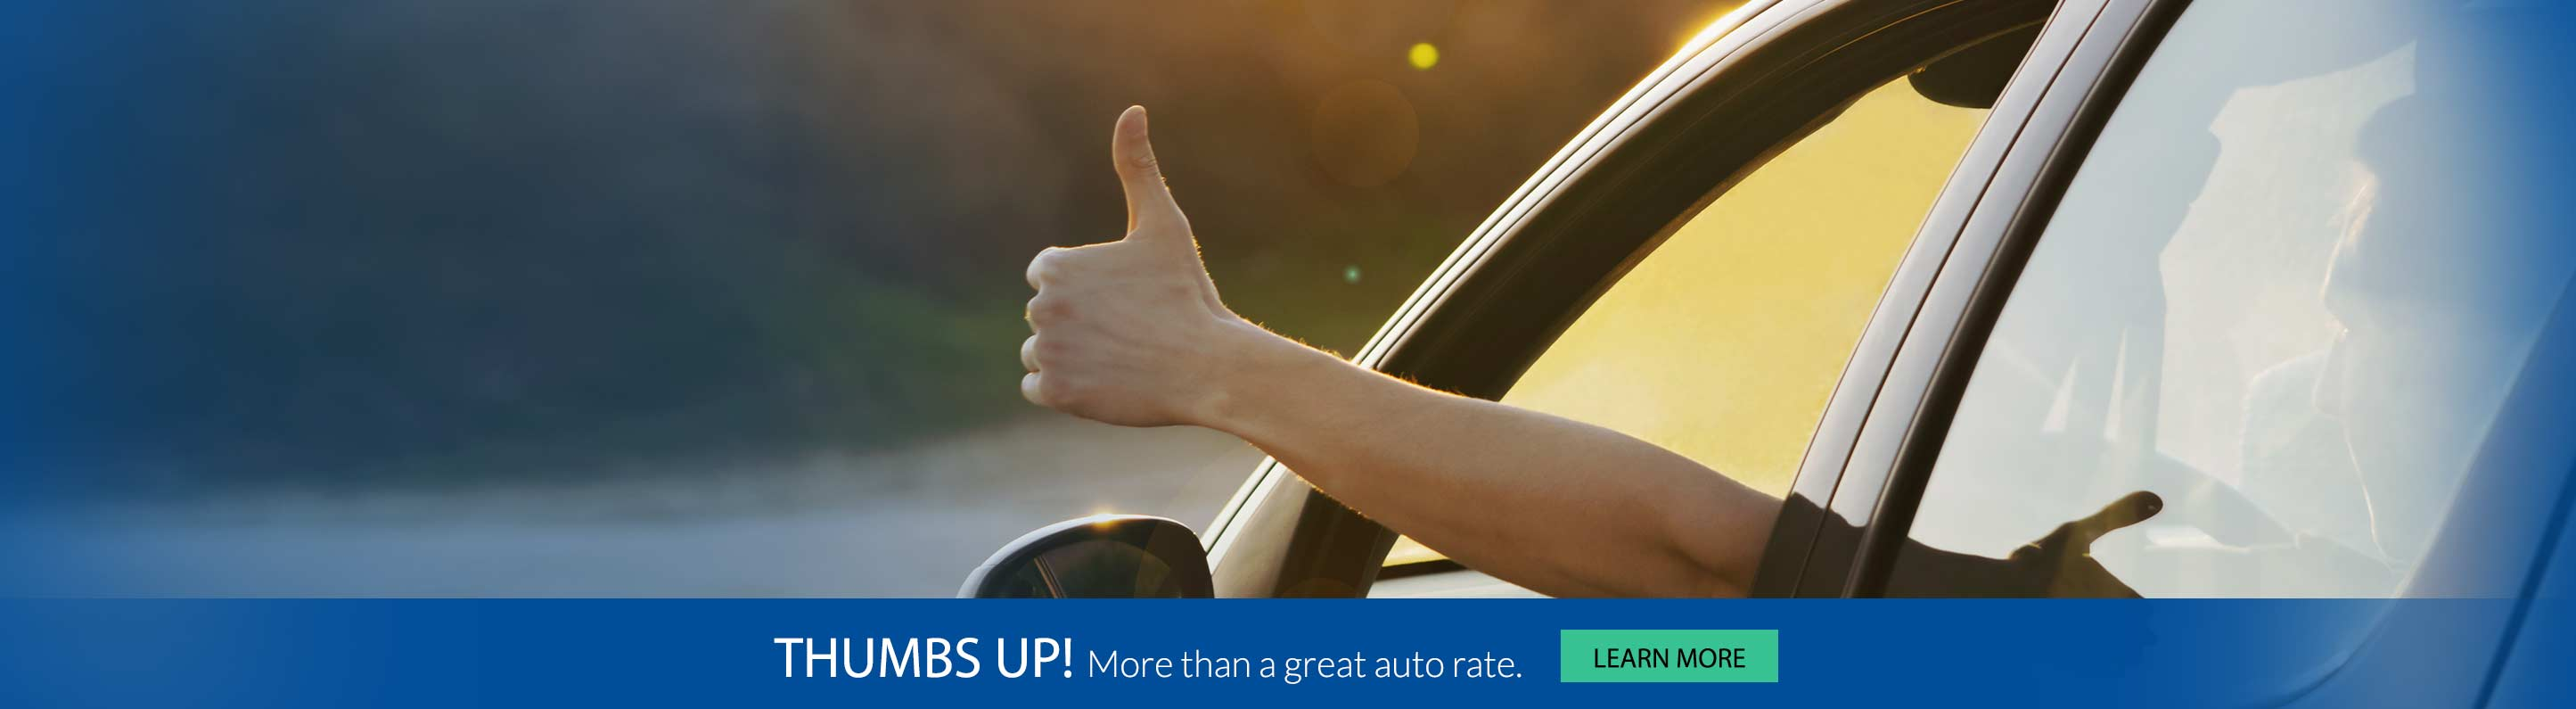 THUMBS UP! More than a great auto rate.